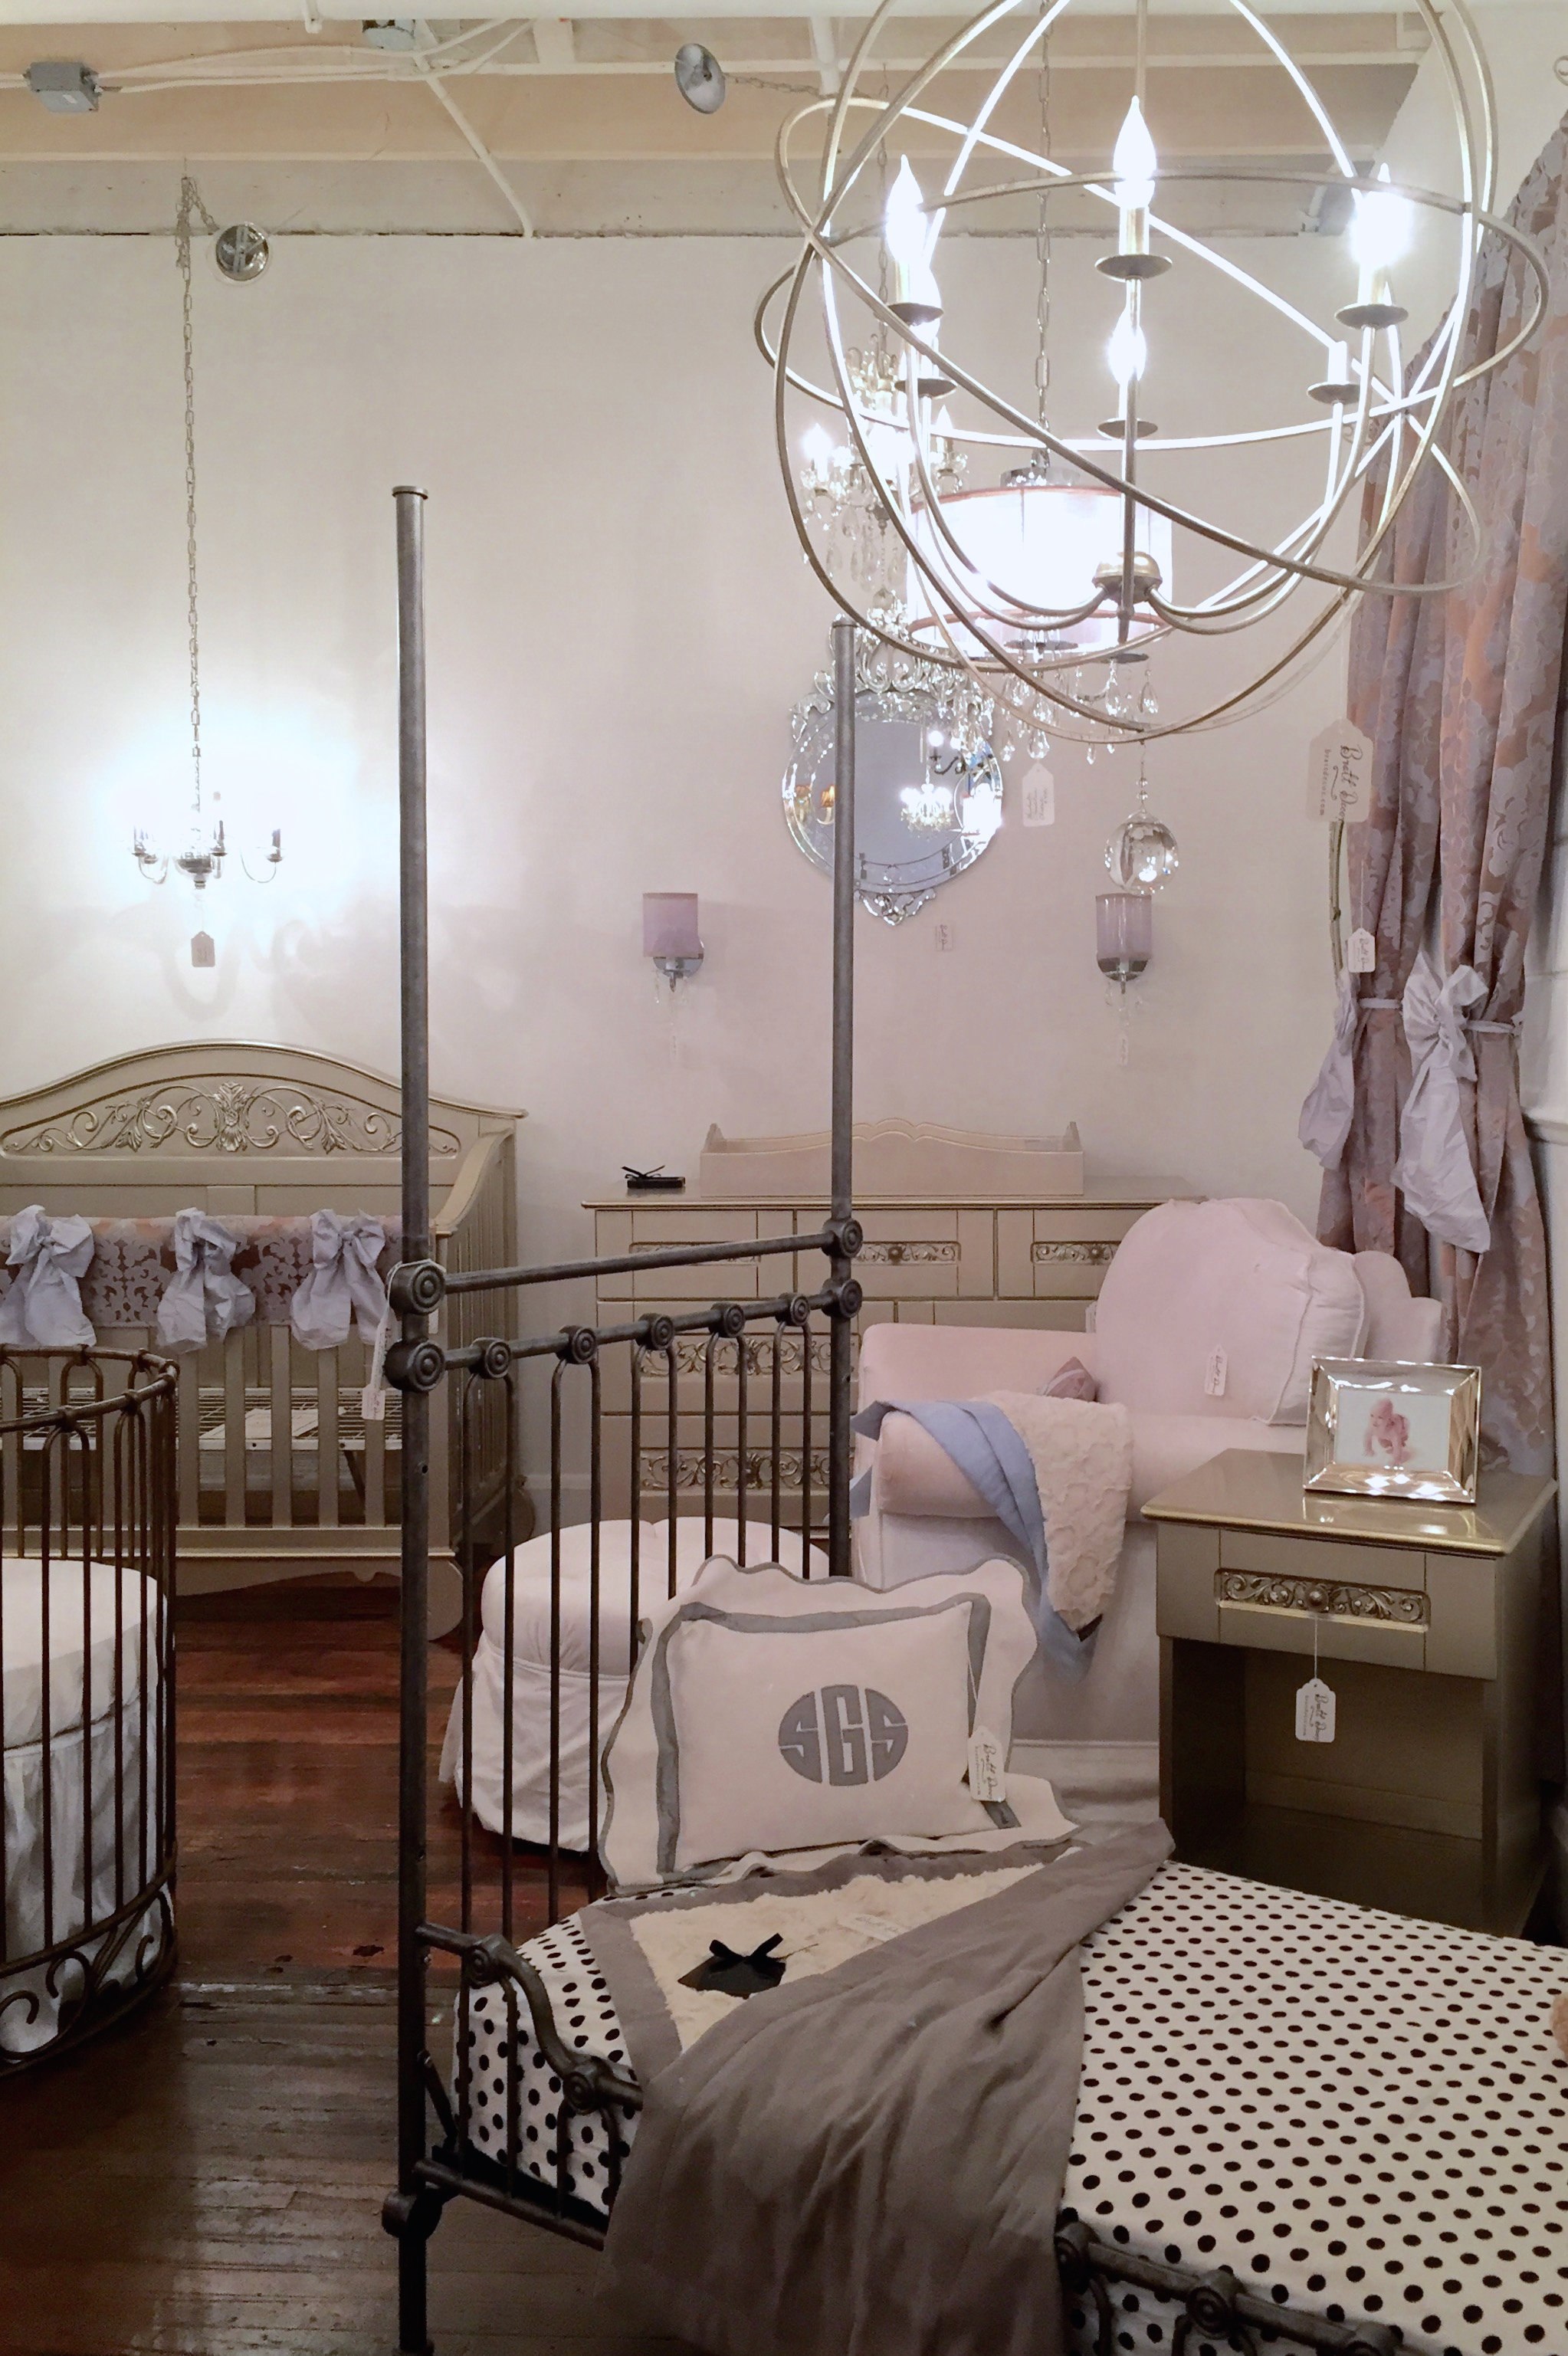 Press Photo Bratt Decor The Best Place For Your Baby Furniture